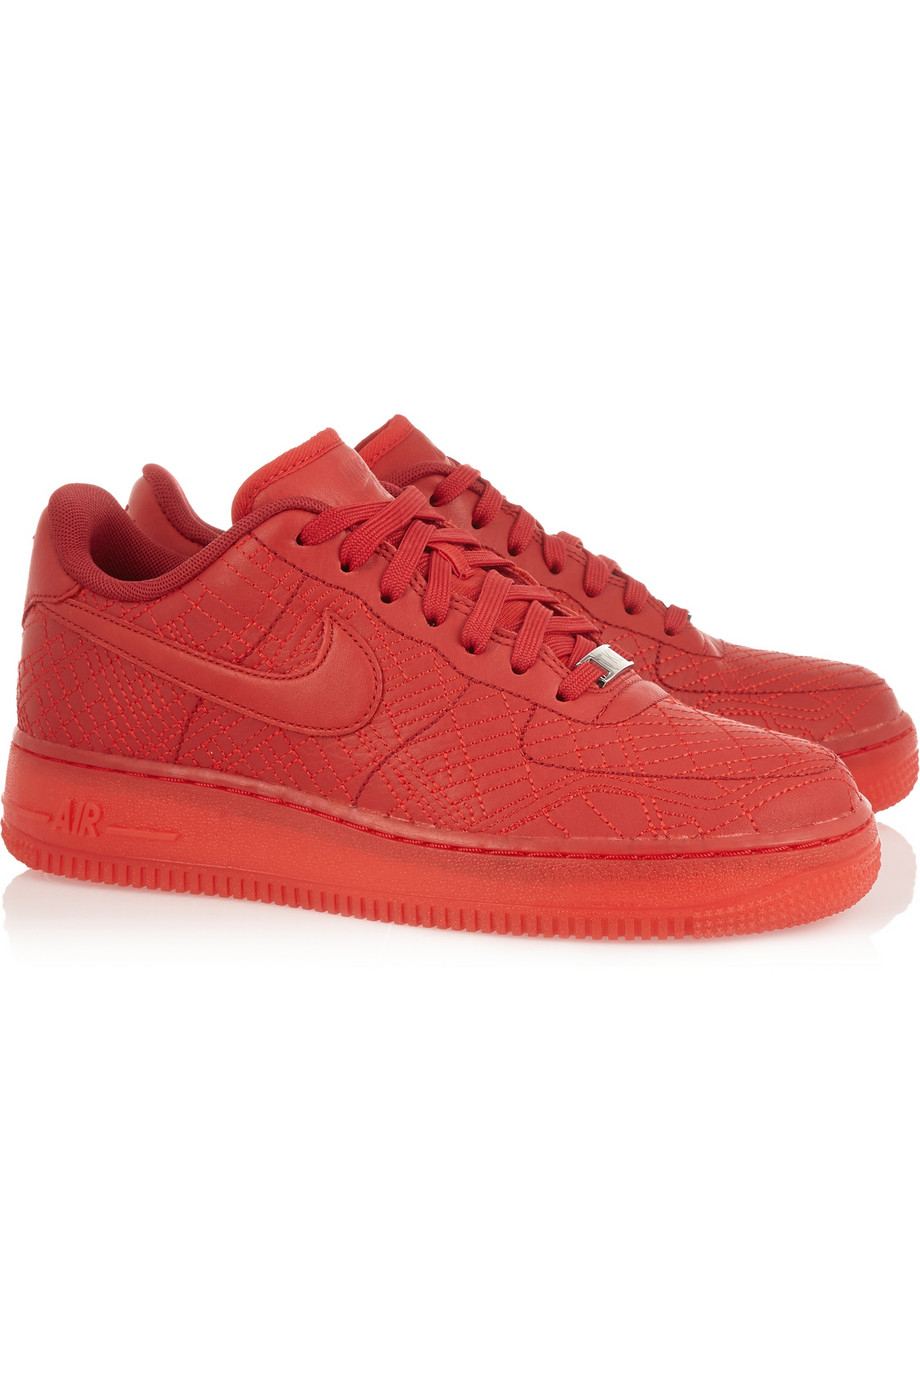 nike air force 1 tokyo leather sneakers in red lyst. Black Bedroom Furniture Sets. Home Design Ideas